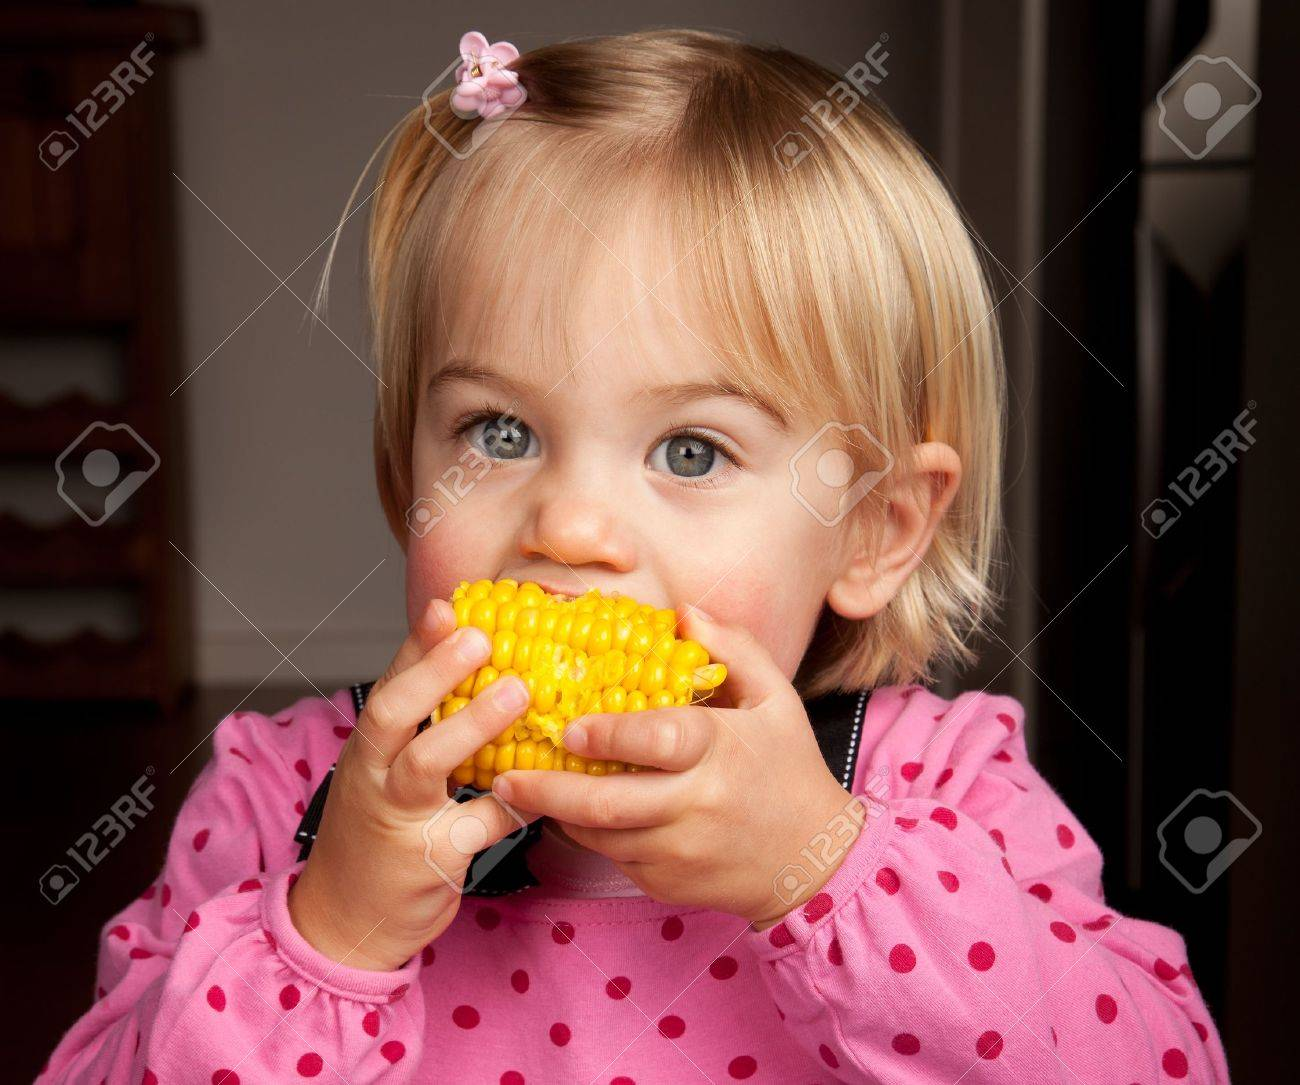 Closeup of a little girl taking a bite out of a corn on the cob Stock Photo - 10385555